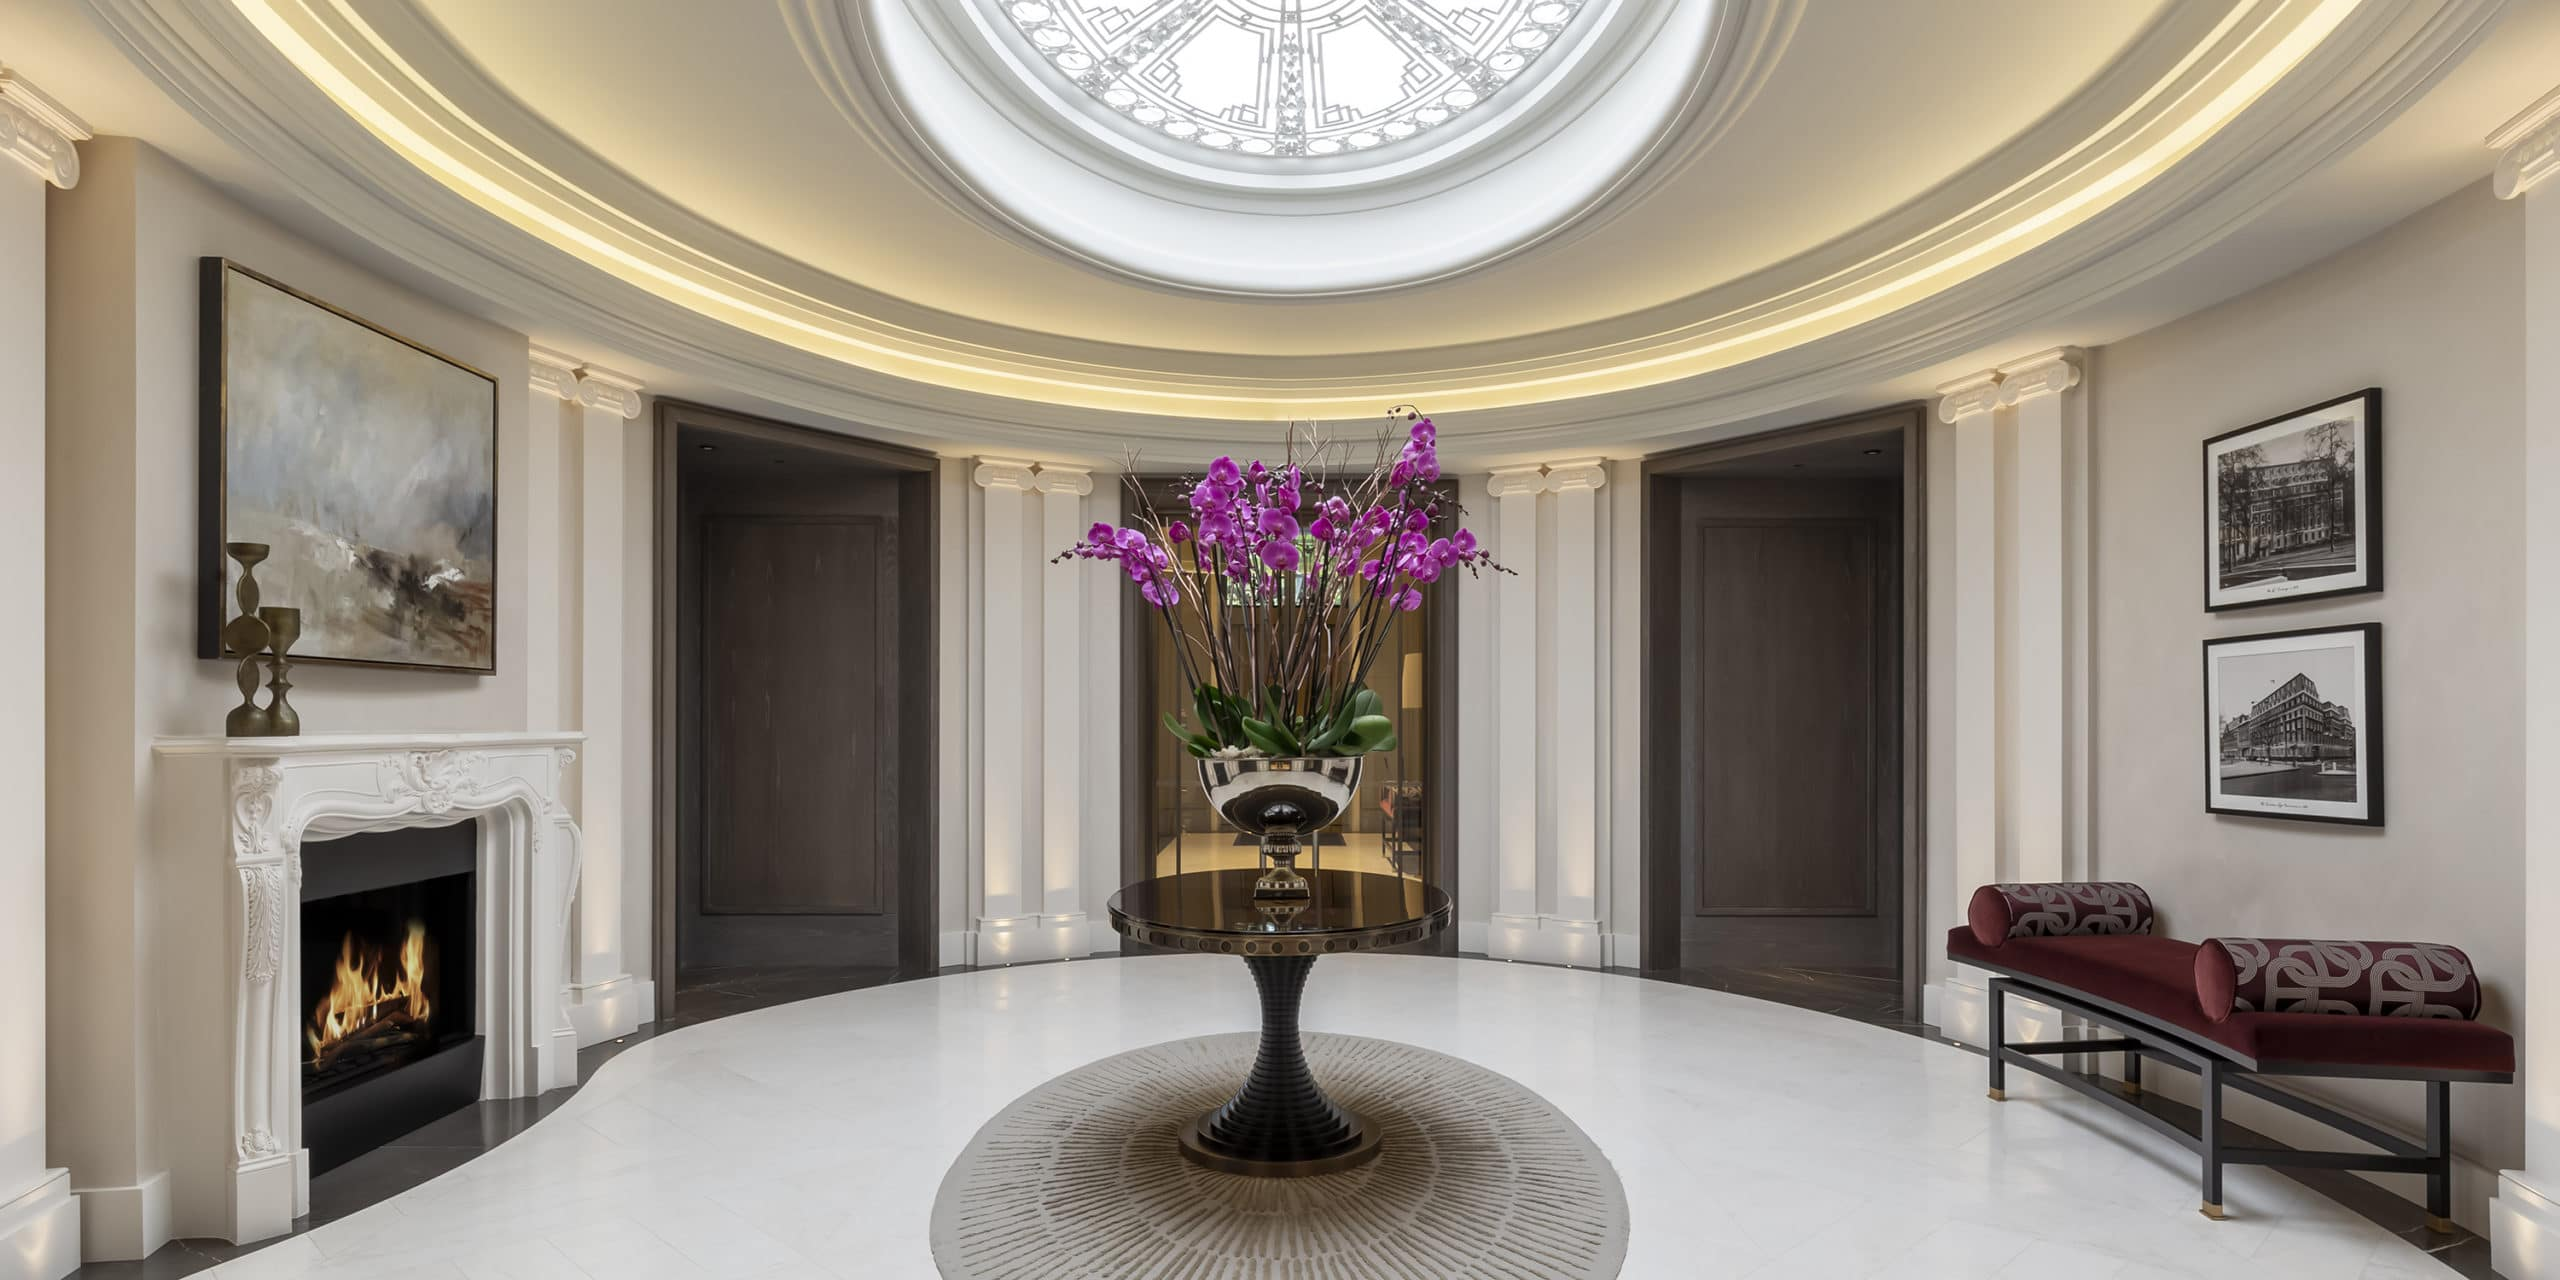 Oval room at 1 Grosvenor Square penthouse in London. Dome ceiling with natural light, white walls, & fireplace on left wall.